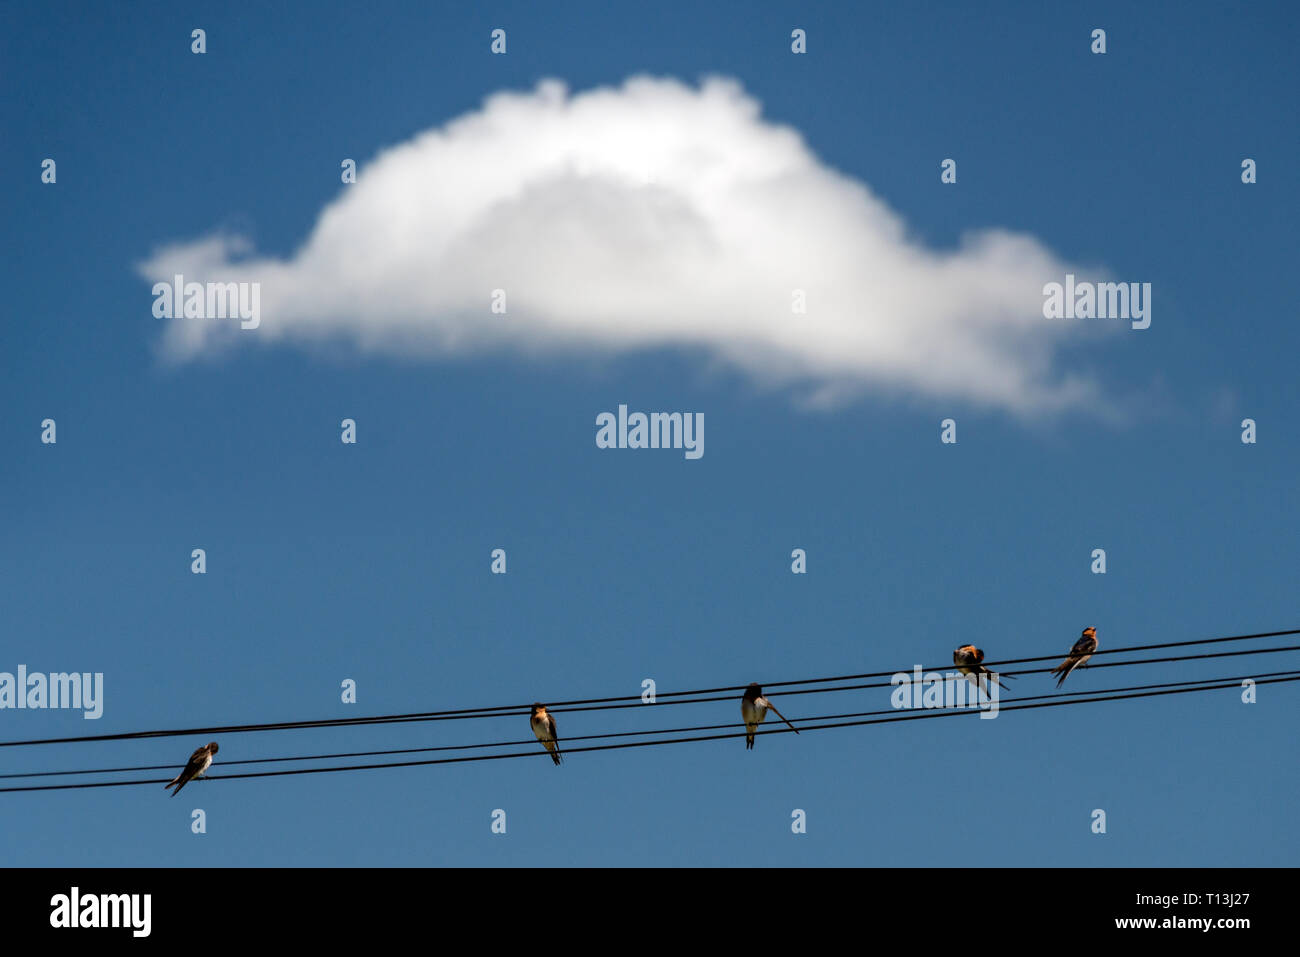 New Zealand Welcome Swallows on a powerlines, with one cloud in background. - Stock Image